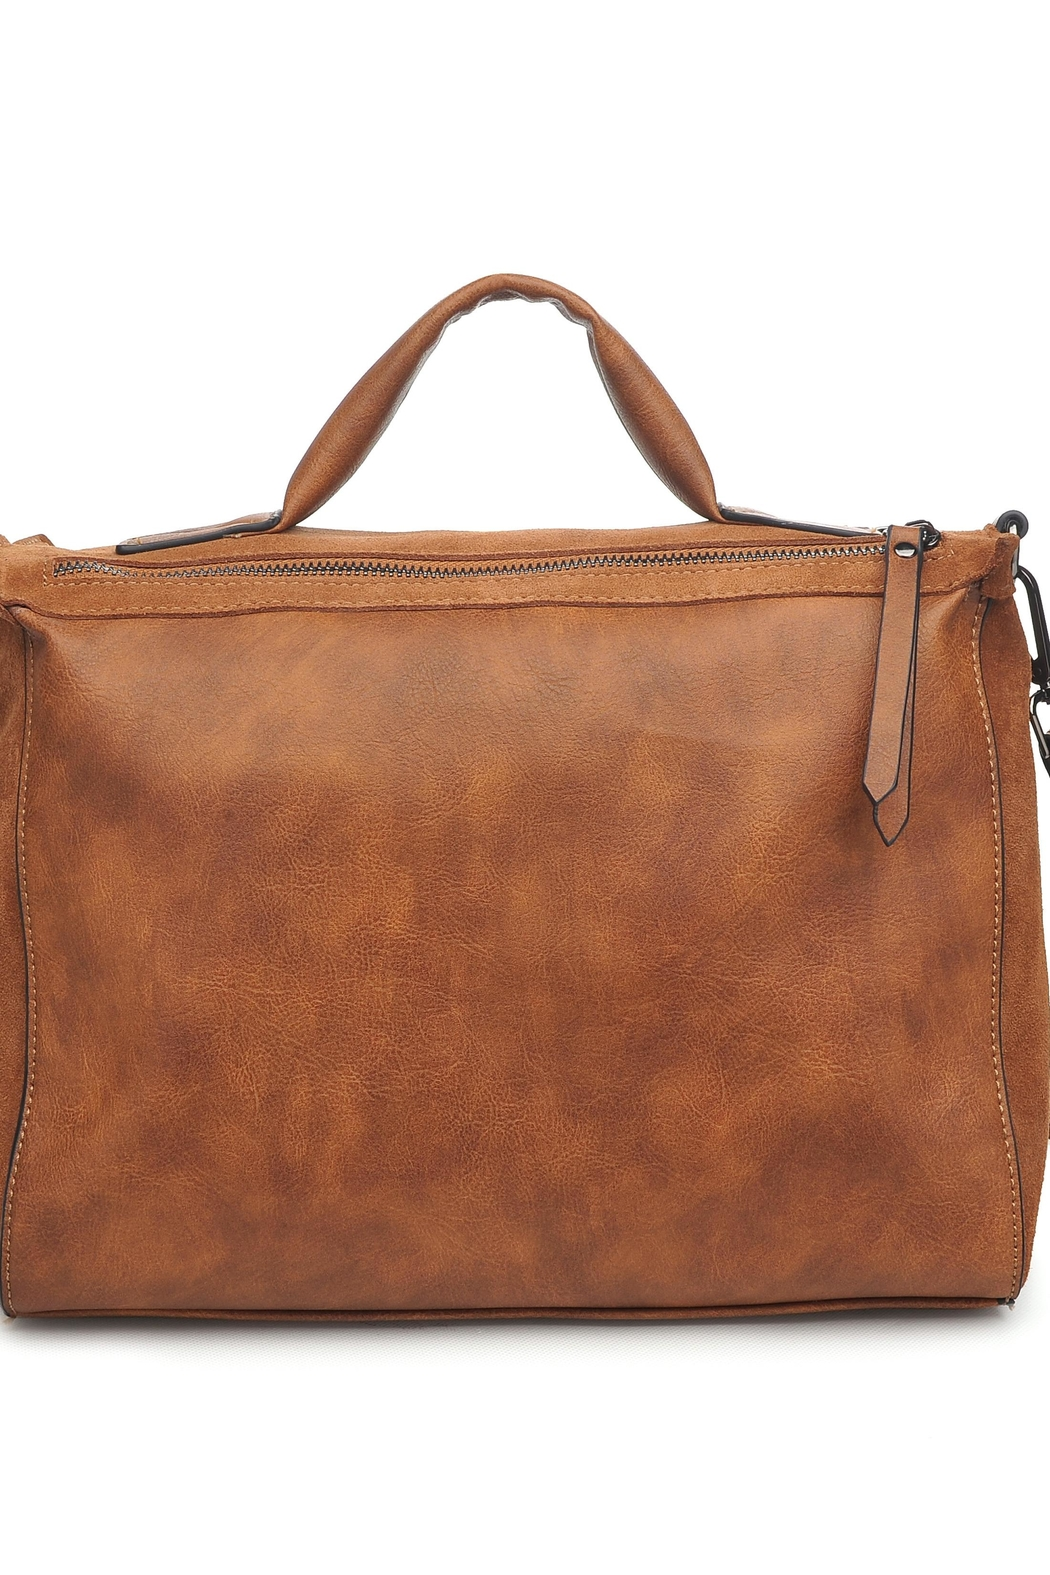 Moda Luxe Harrison Bag - Side Cropped Image